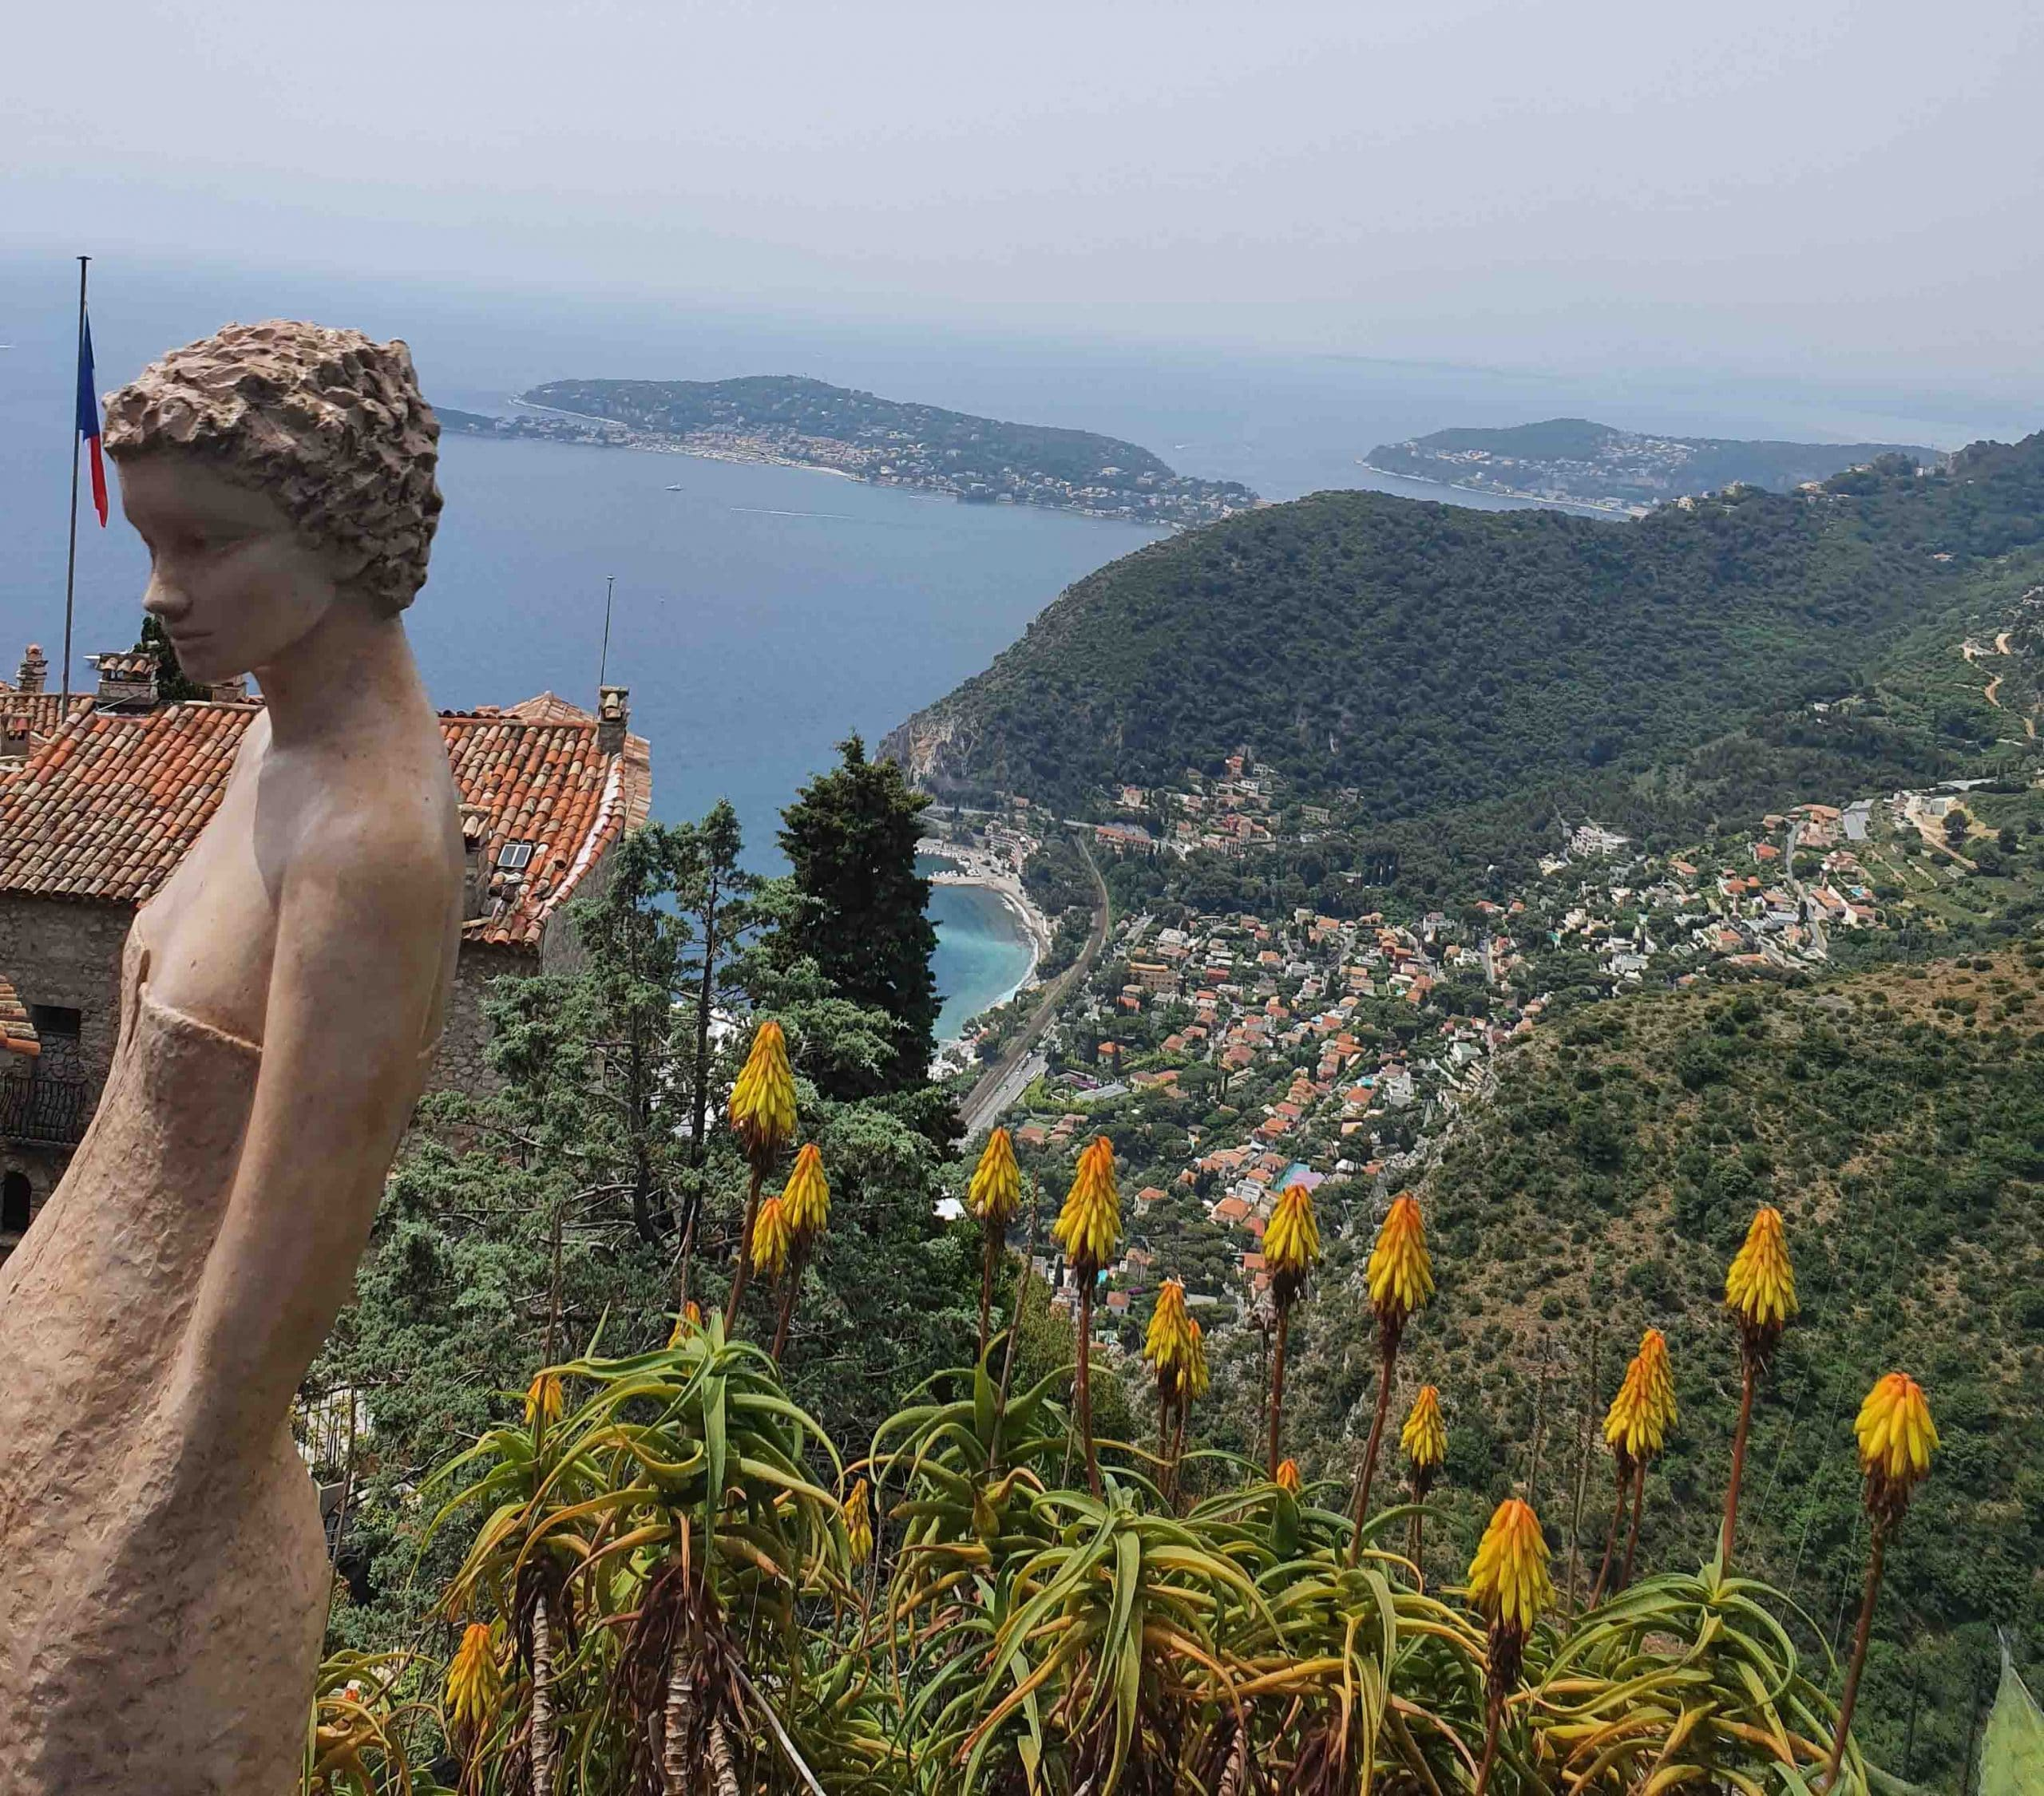 Garden of Eze and the statues of Jean-Philippe Richard